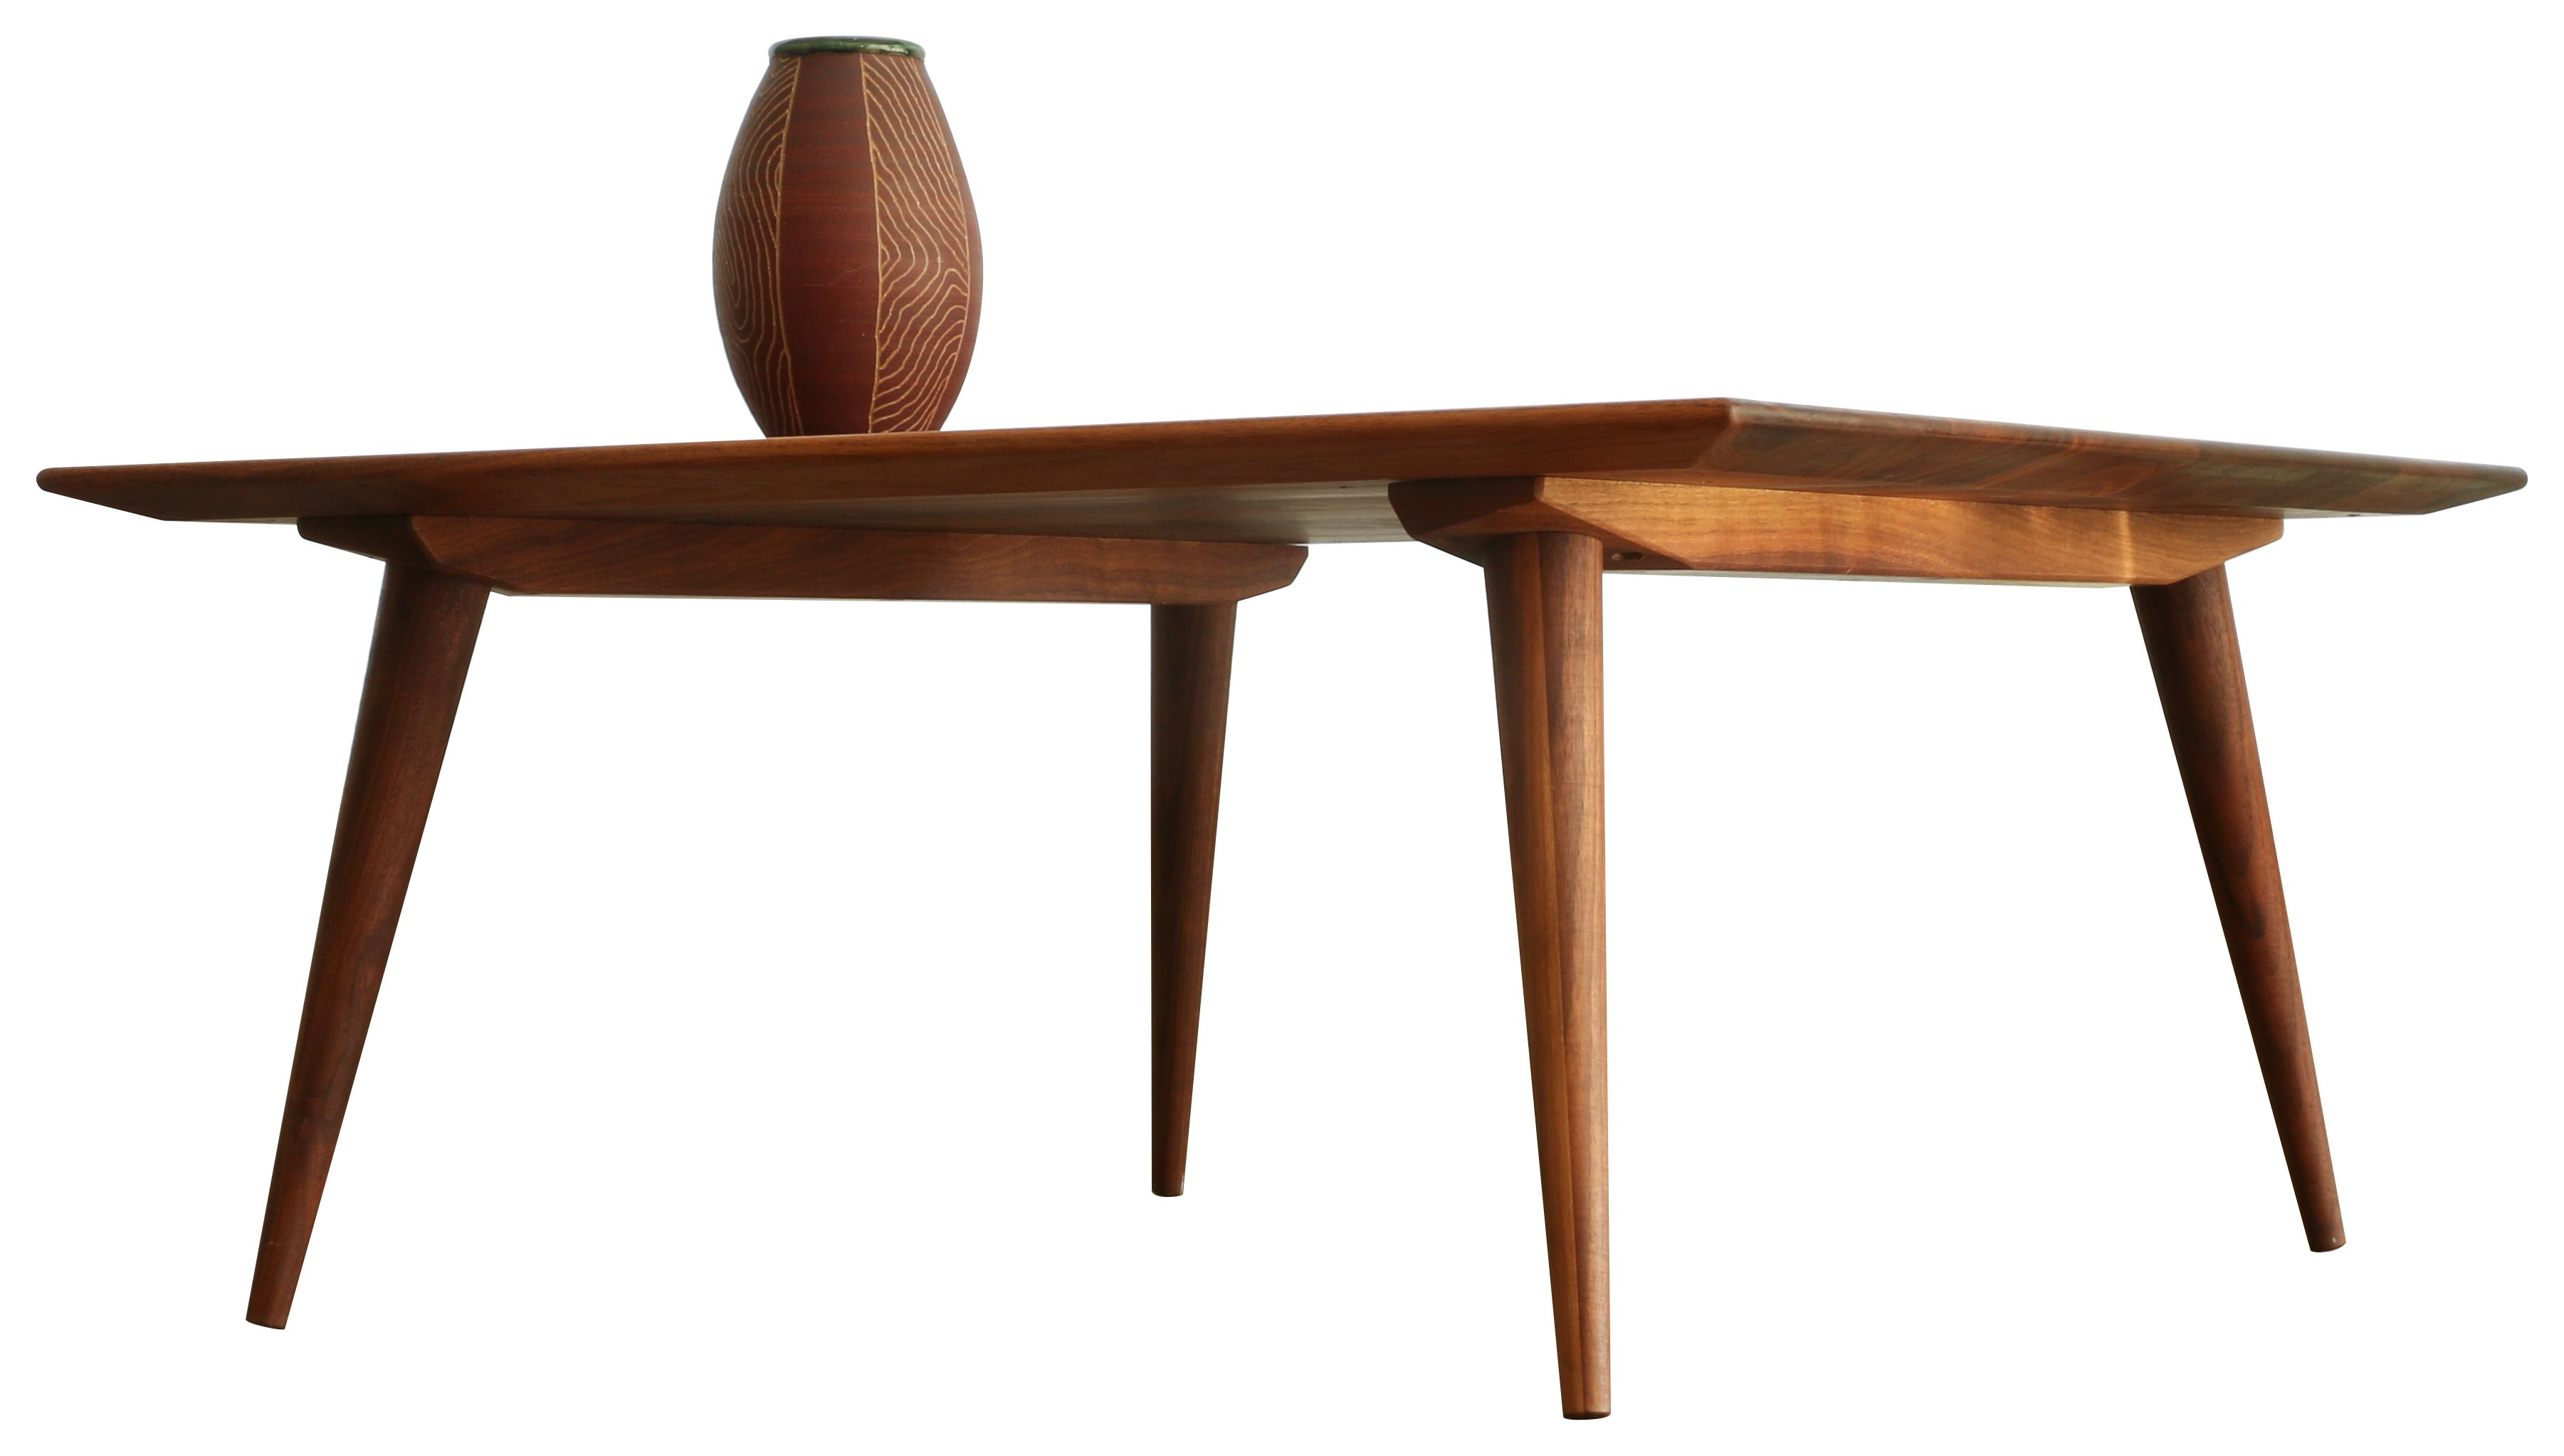 Mid Century Modern Mcm Furniture Designers Are Renowned For Creating Appealing Tables Tha Mid Century Modern Table Modern Table Legs Mid Century Coffee Table Mid century coffee table legs